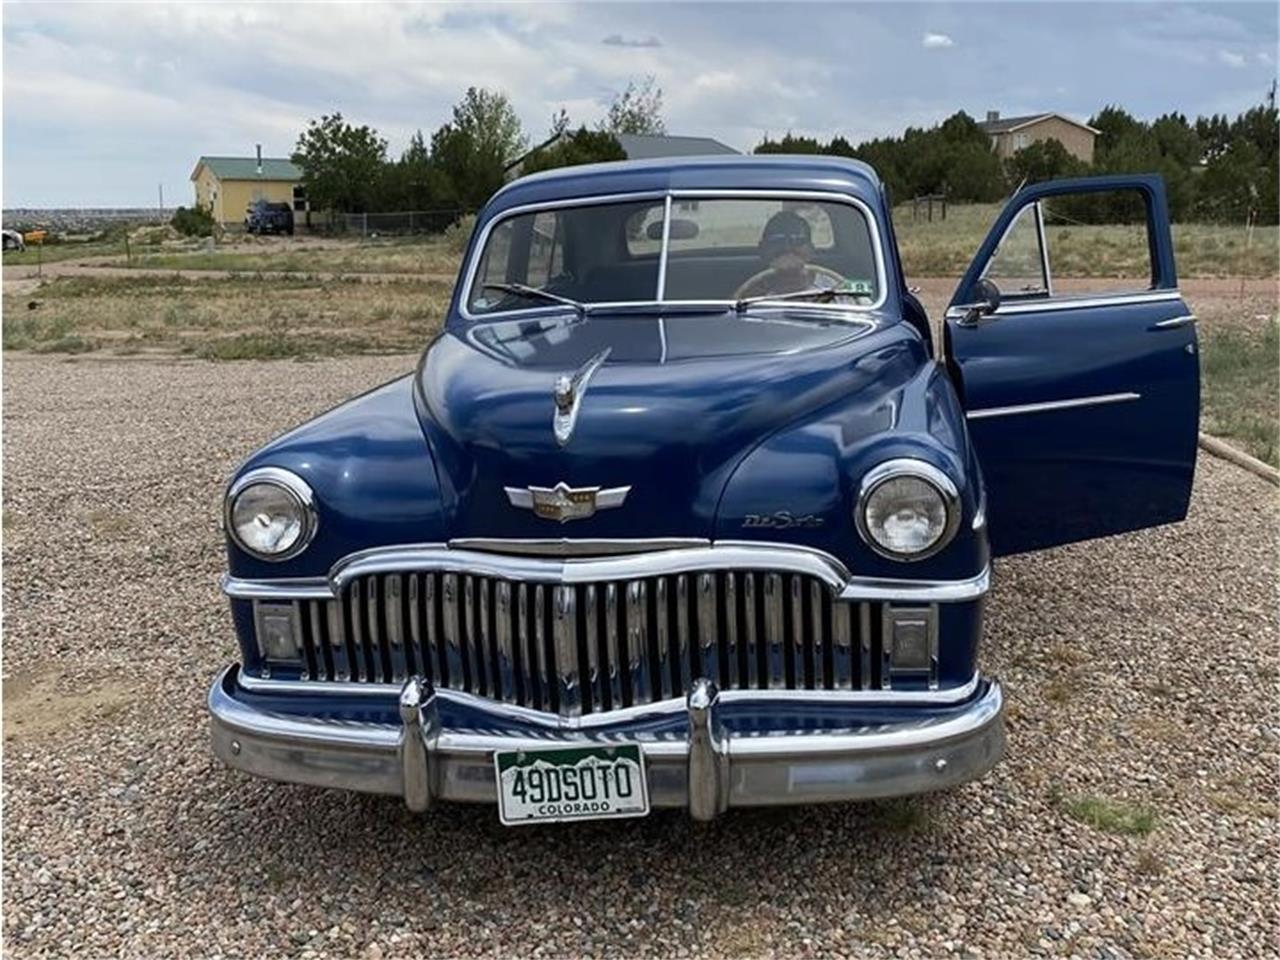 1949 DeSoto 4-Dr Sedan (CC-1412666) for sale in Rockvale, Colorado